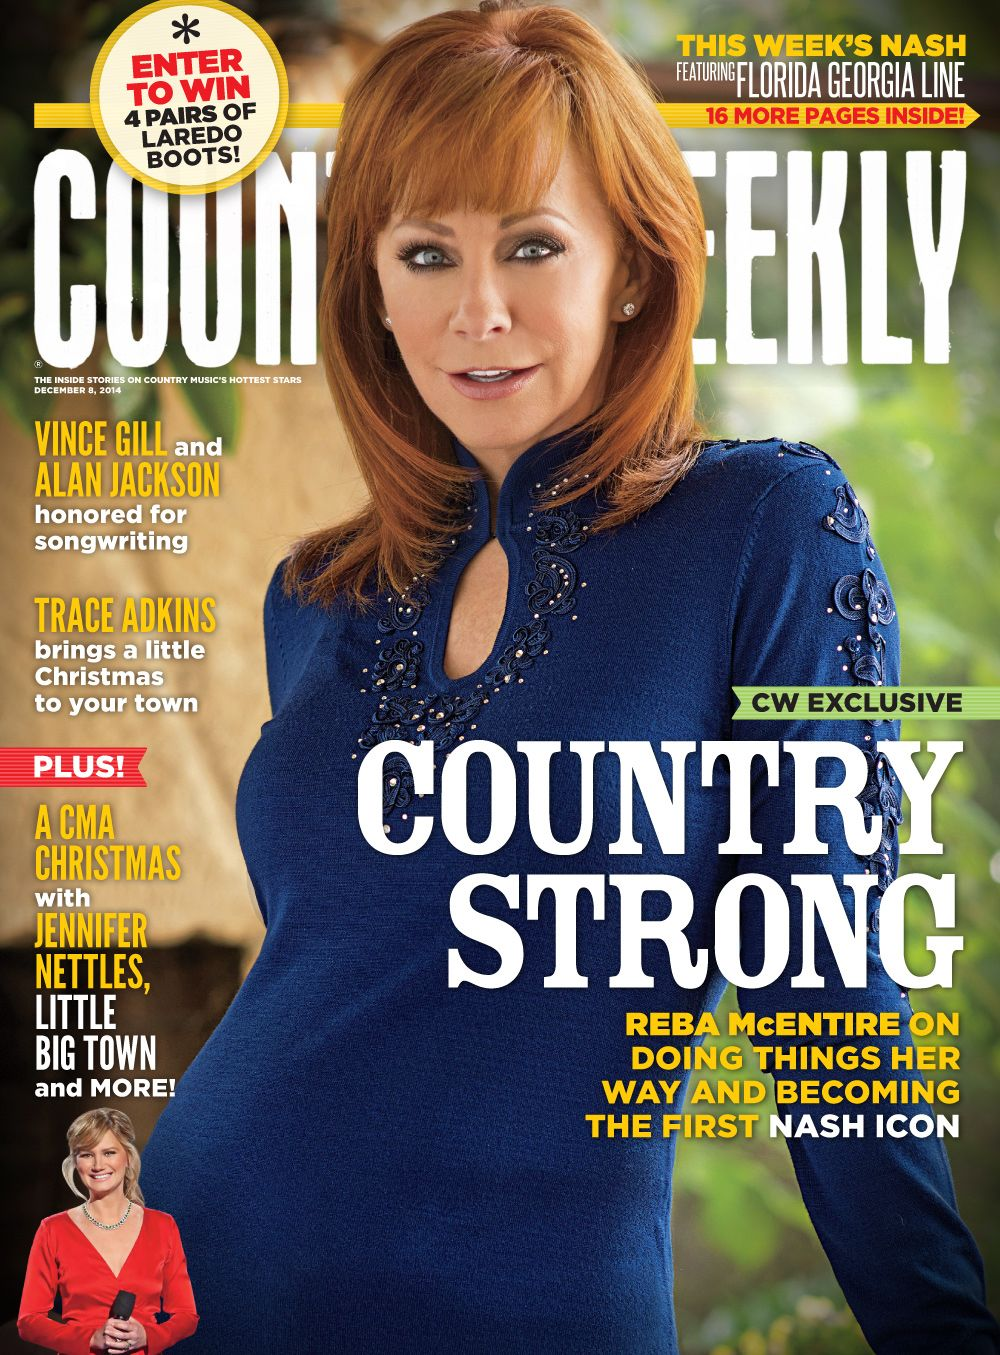 Image From Http Www Countryweekly Com Sites Countryweekly Com